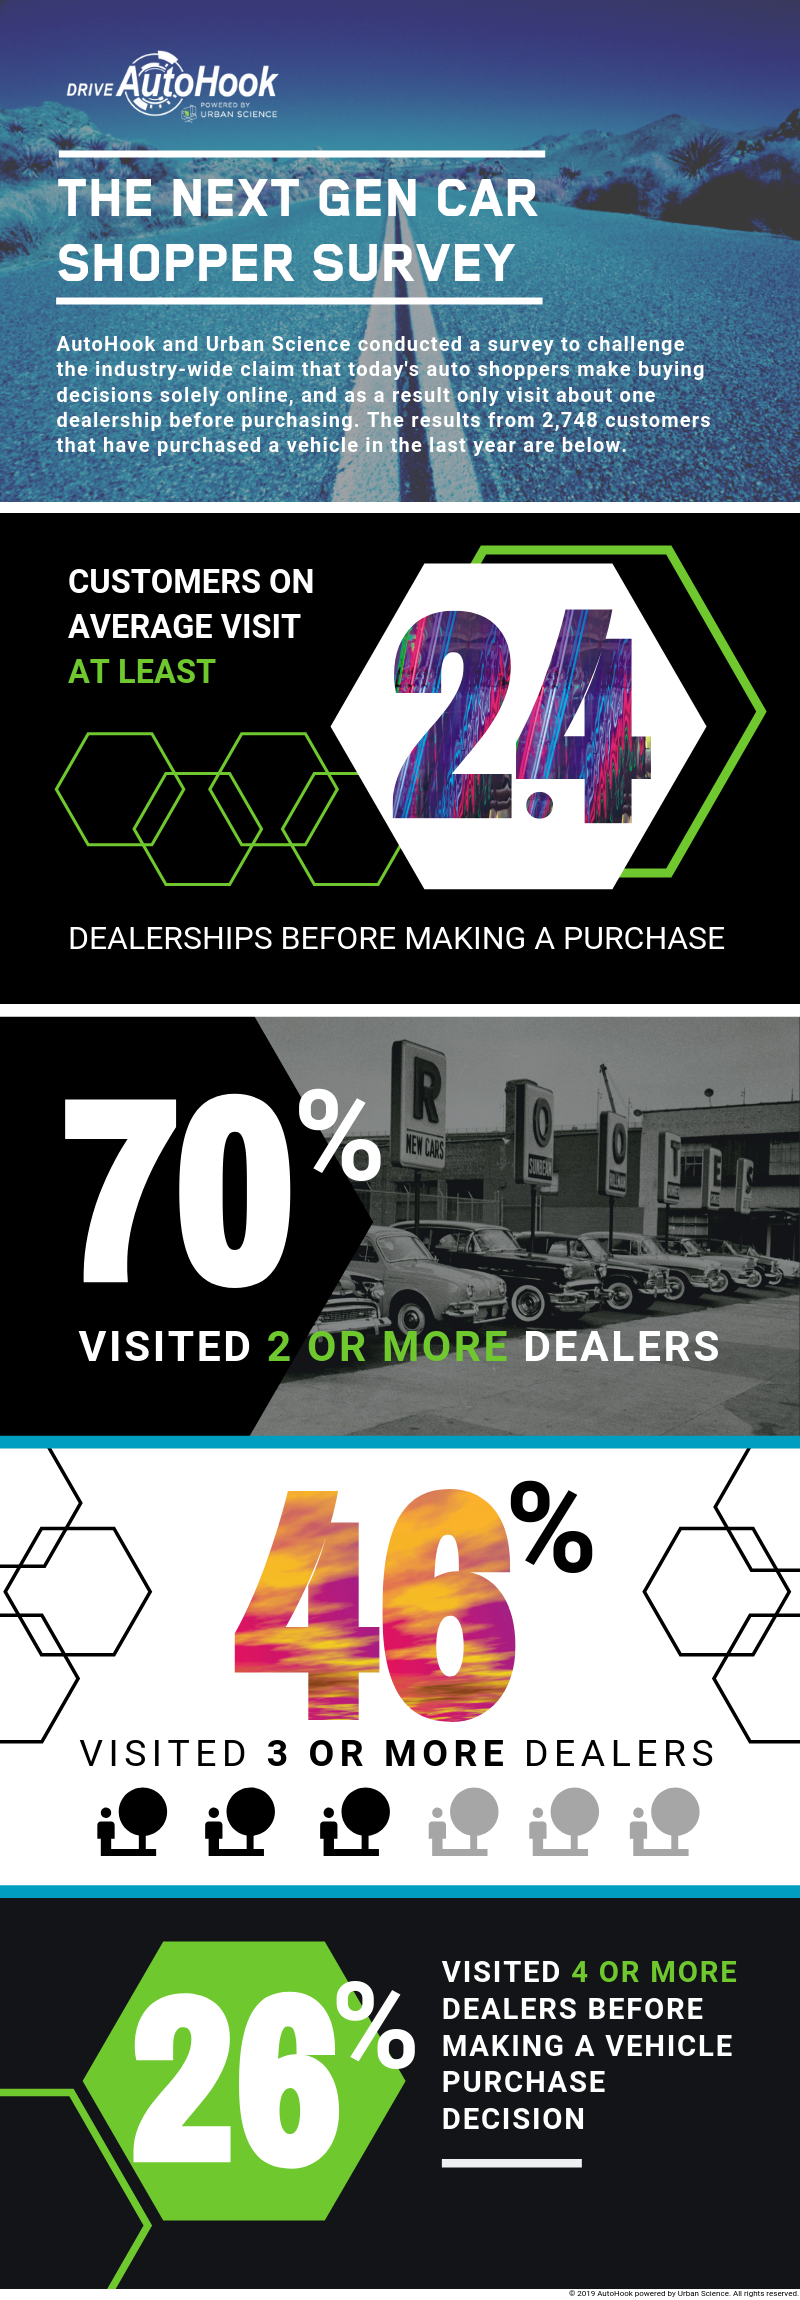 5.16.19_HOW MANY DEALERS_Infographic (2).png